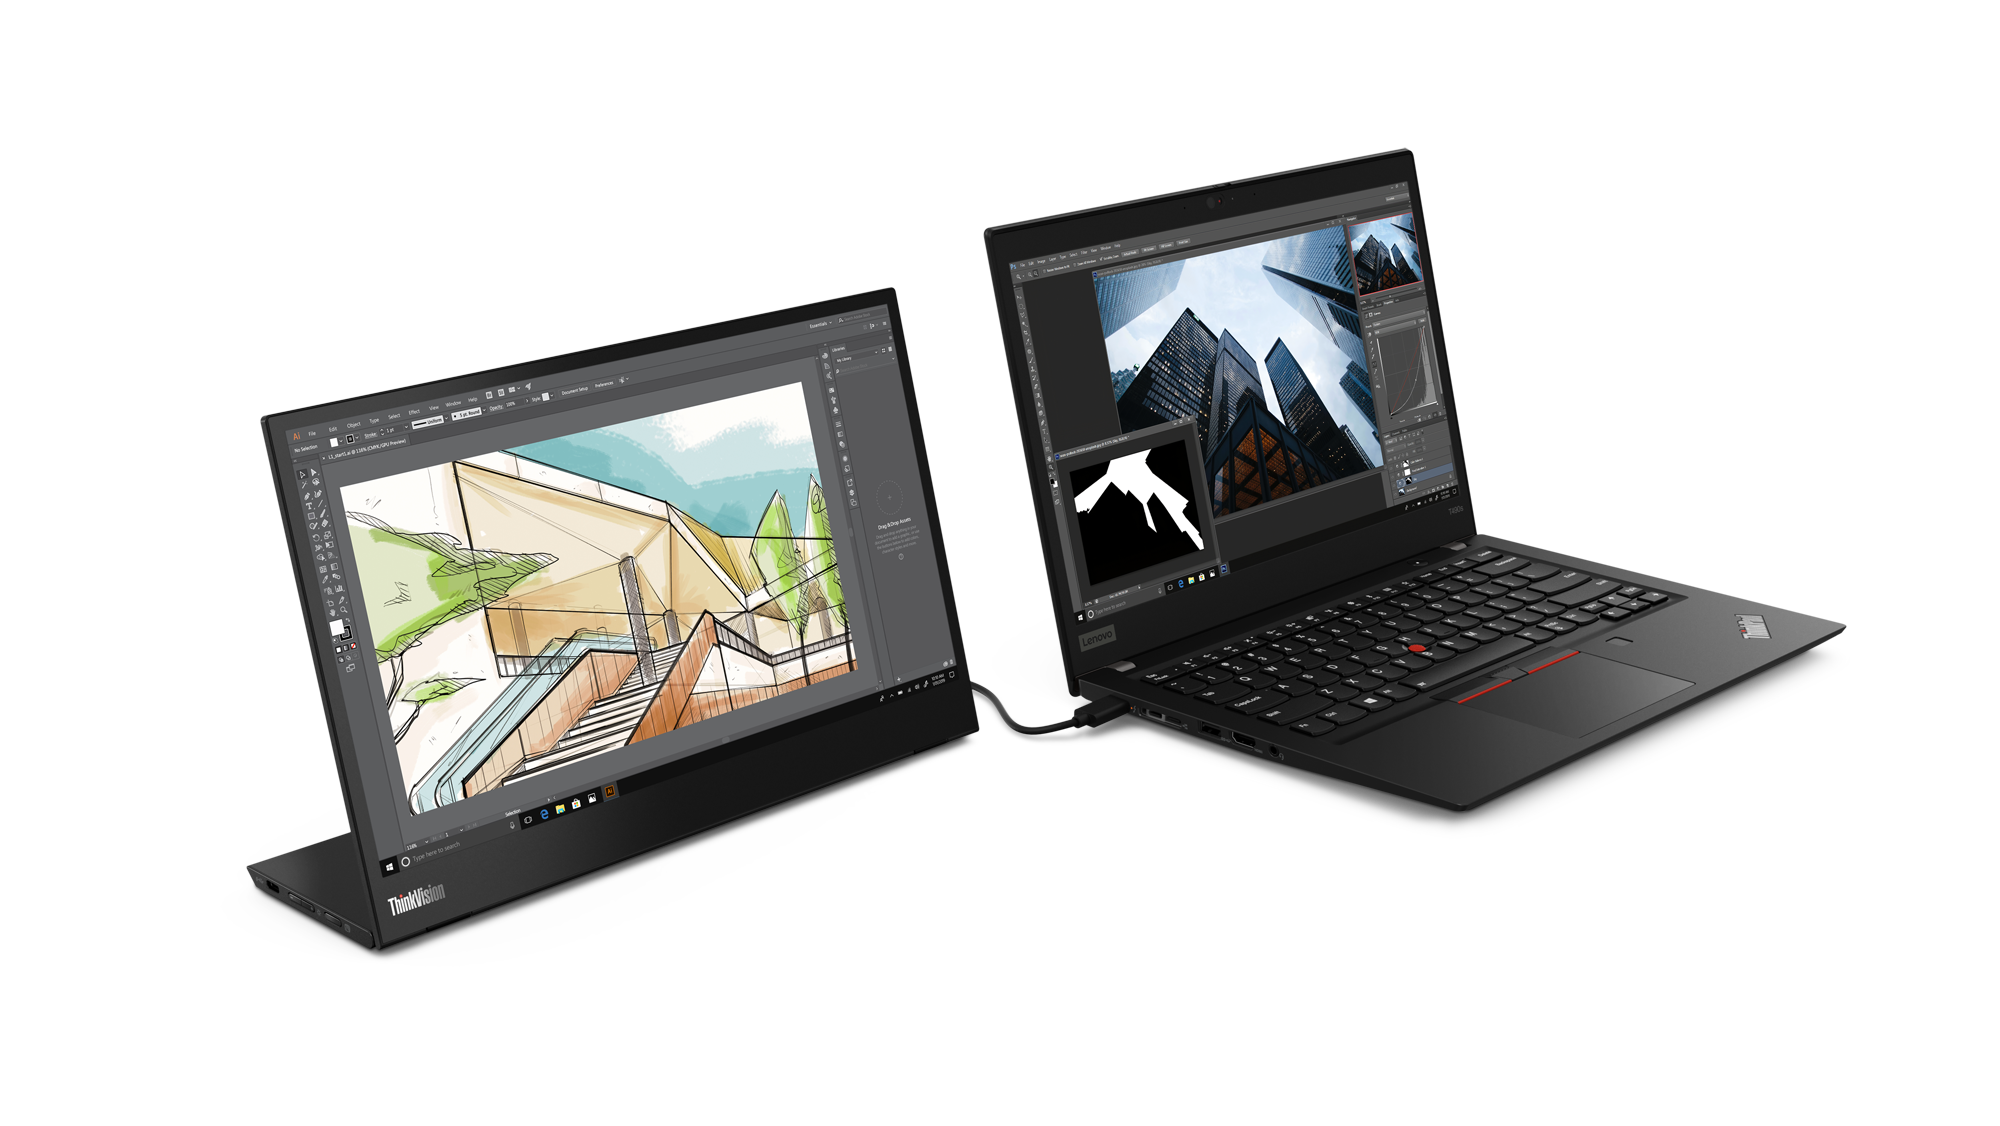 02_Thinkvision_M14_Hero_With_Laptop_Right_Handed_User